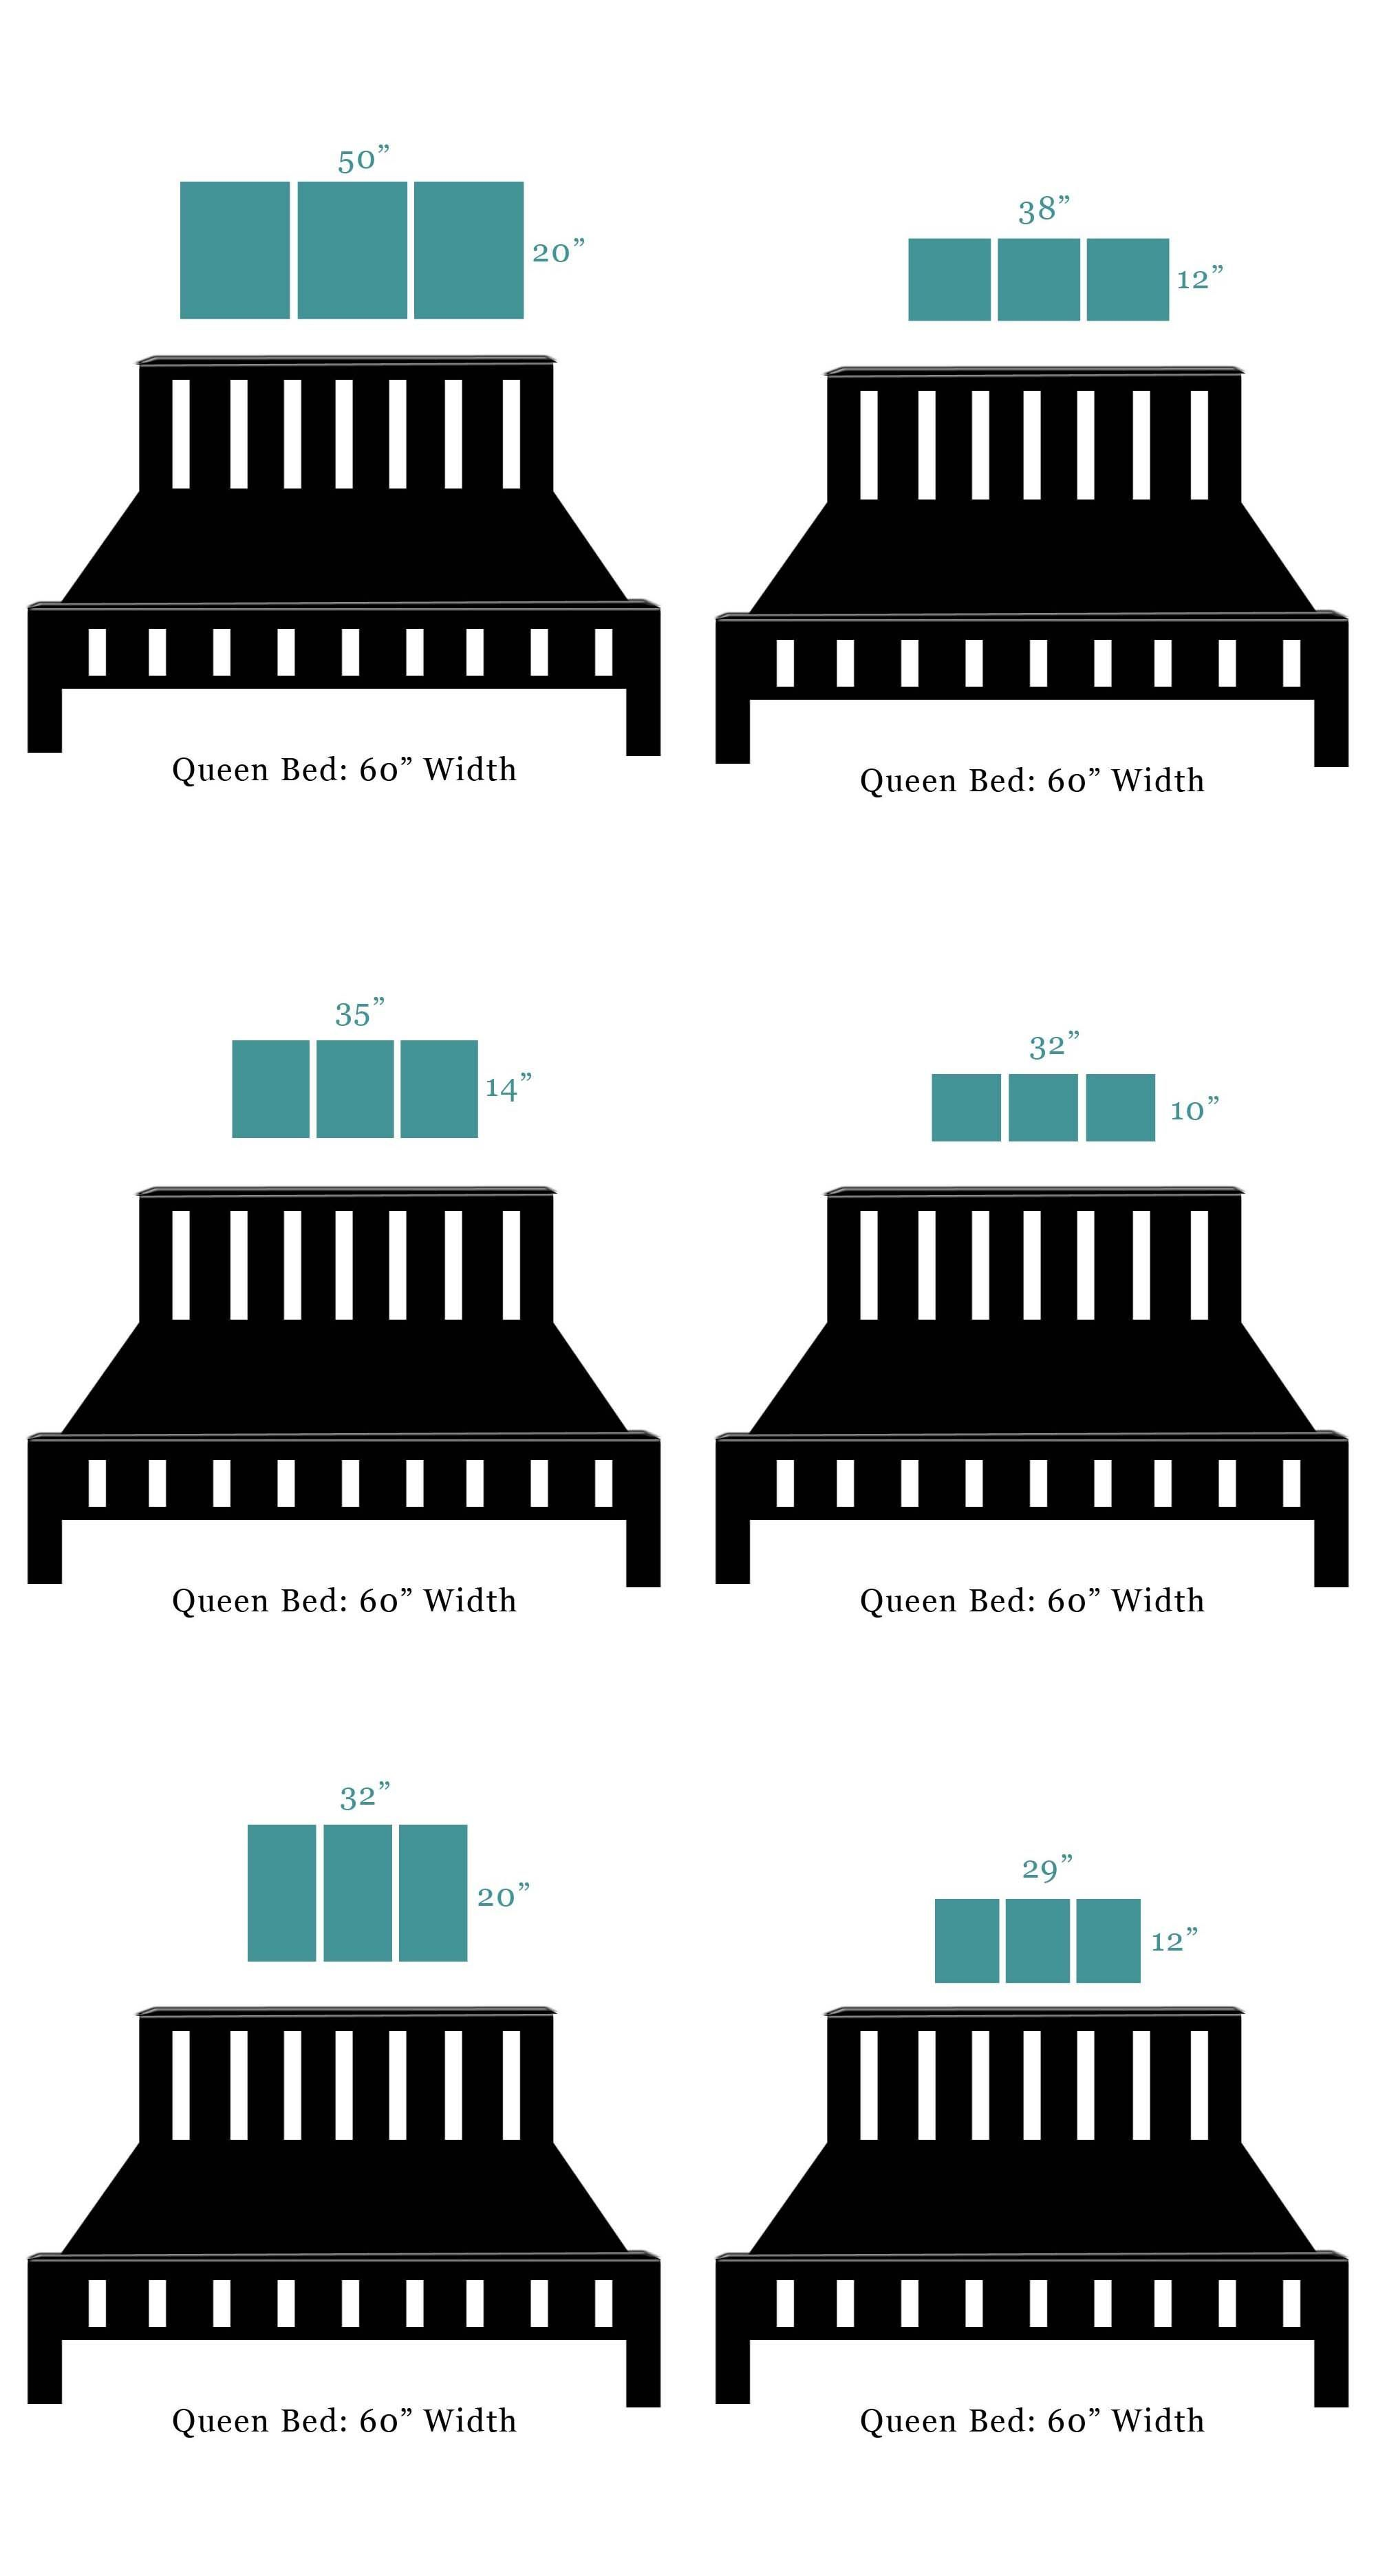 Painting Sizes That Fit Over a Queen Size Bed | Bedroom ...